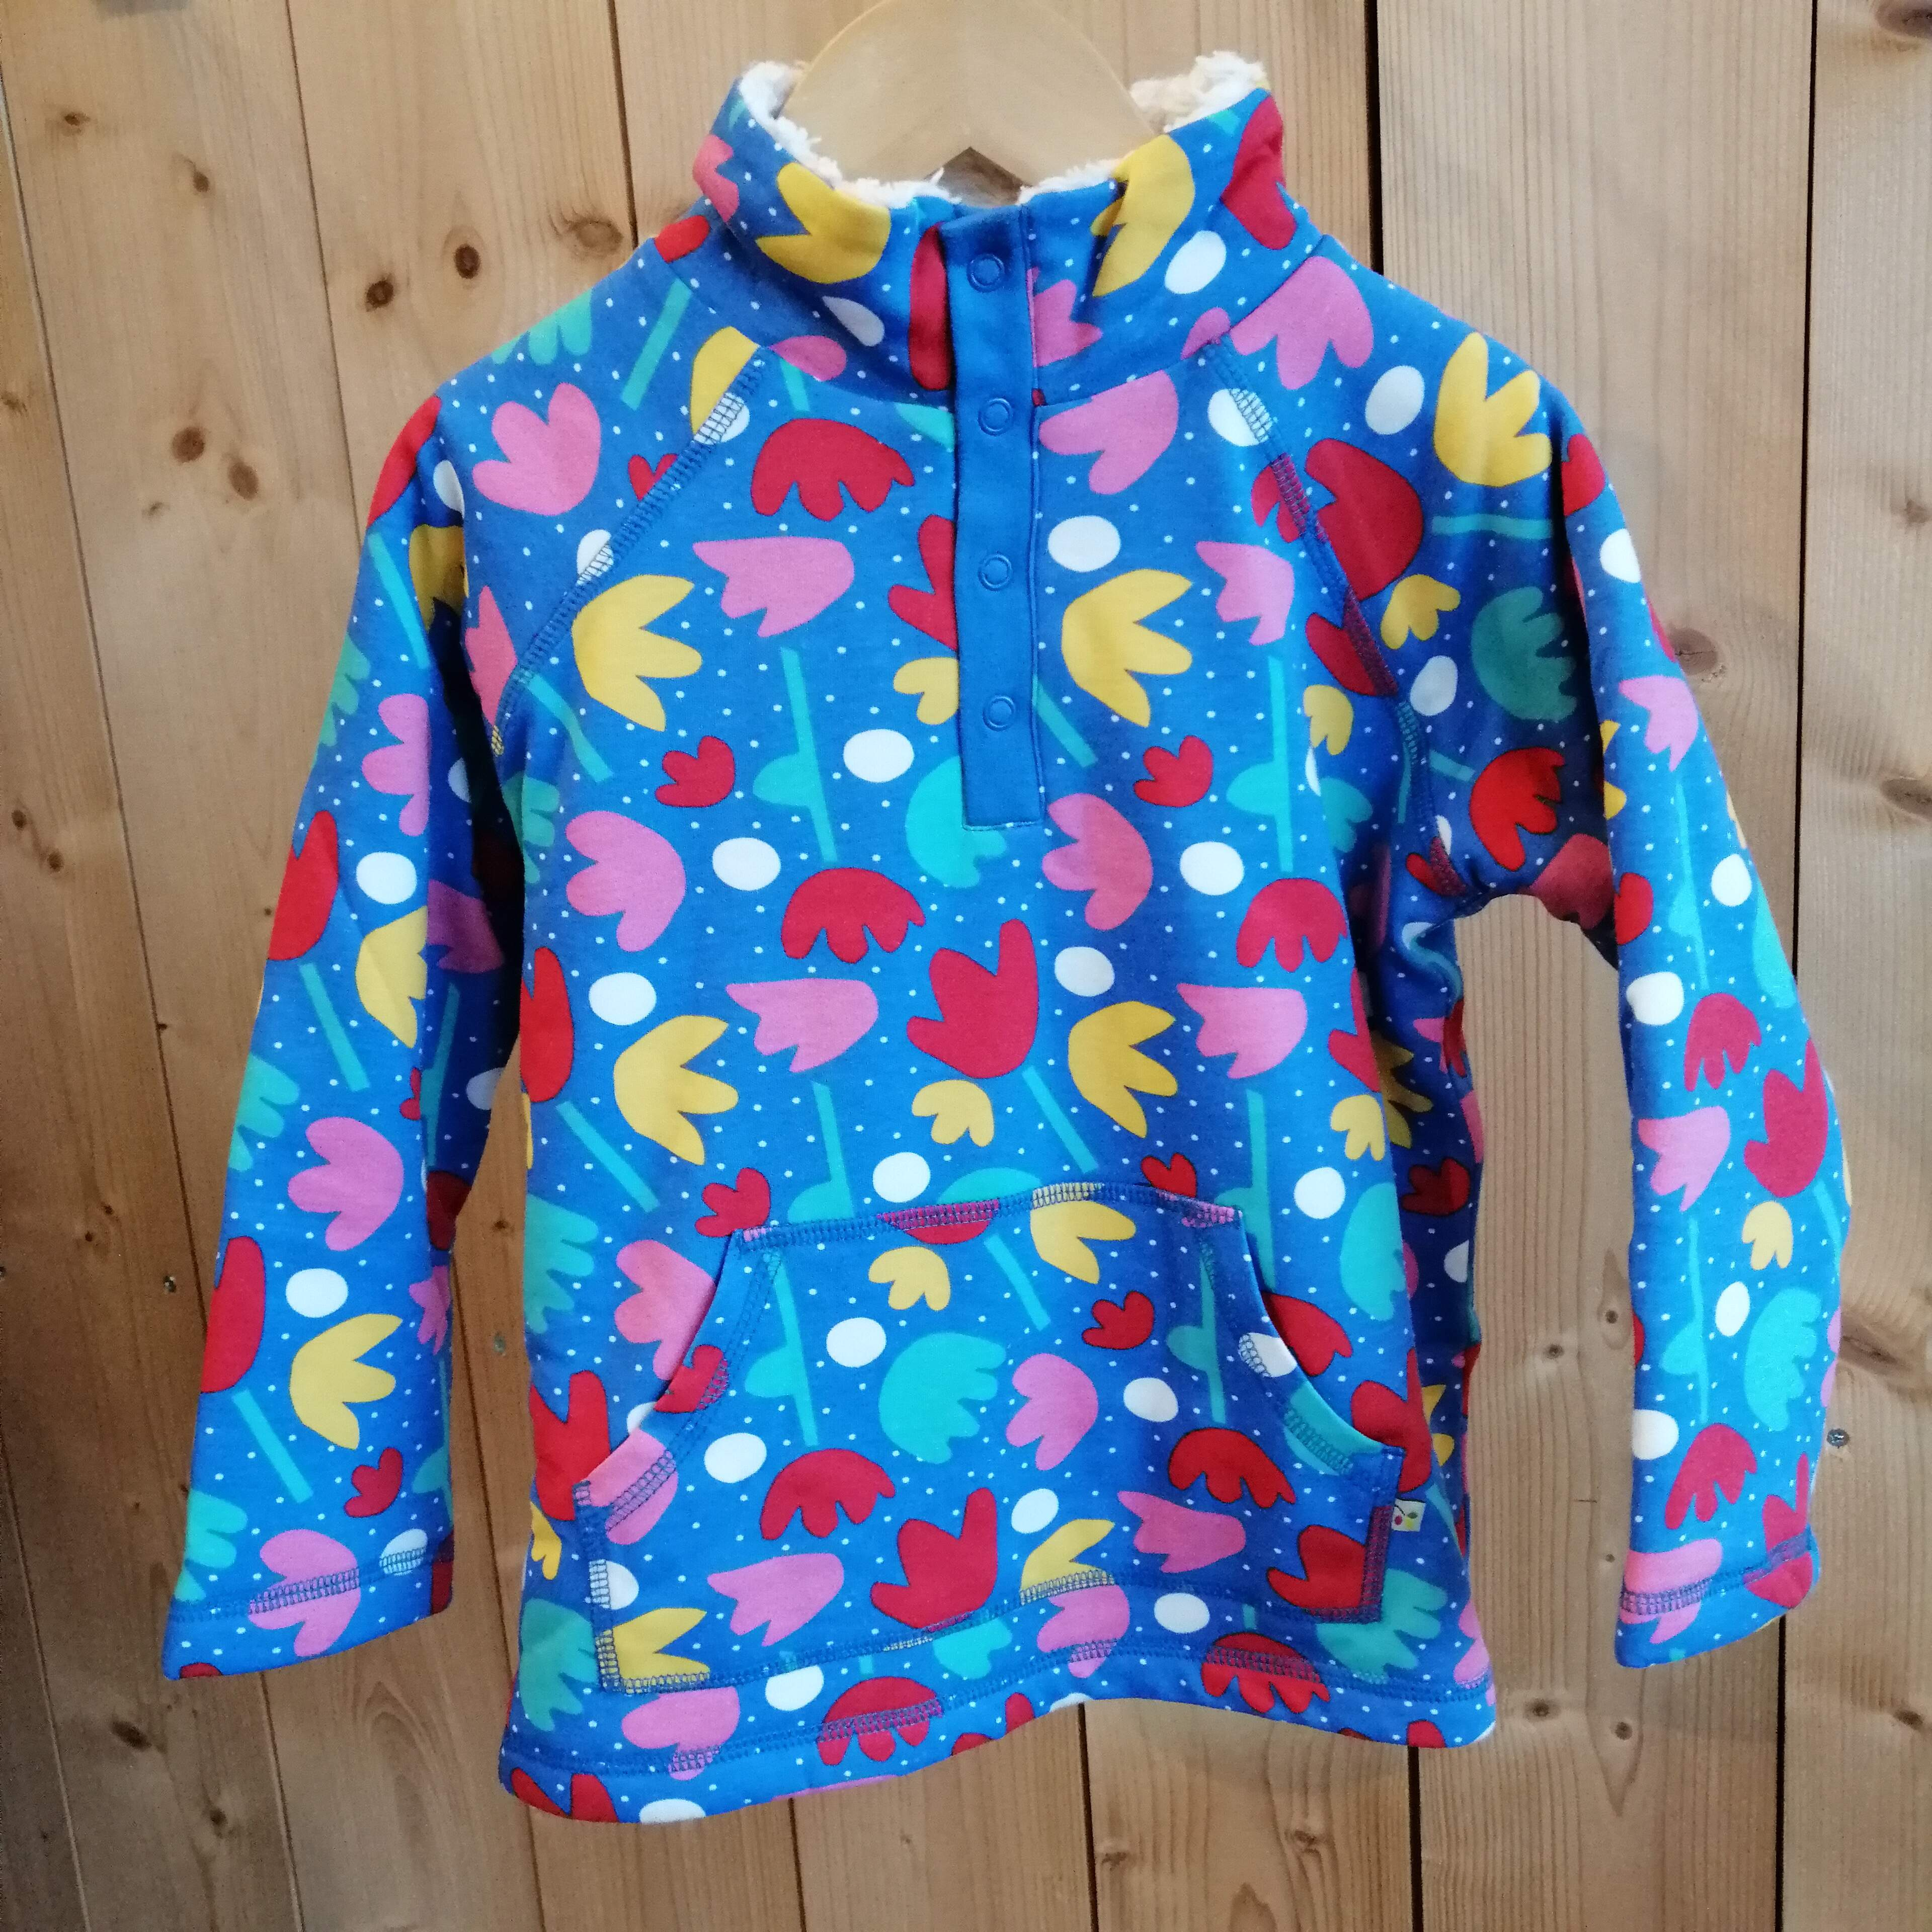 New Spring/Summer Frugi - 12mths to 4yrs